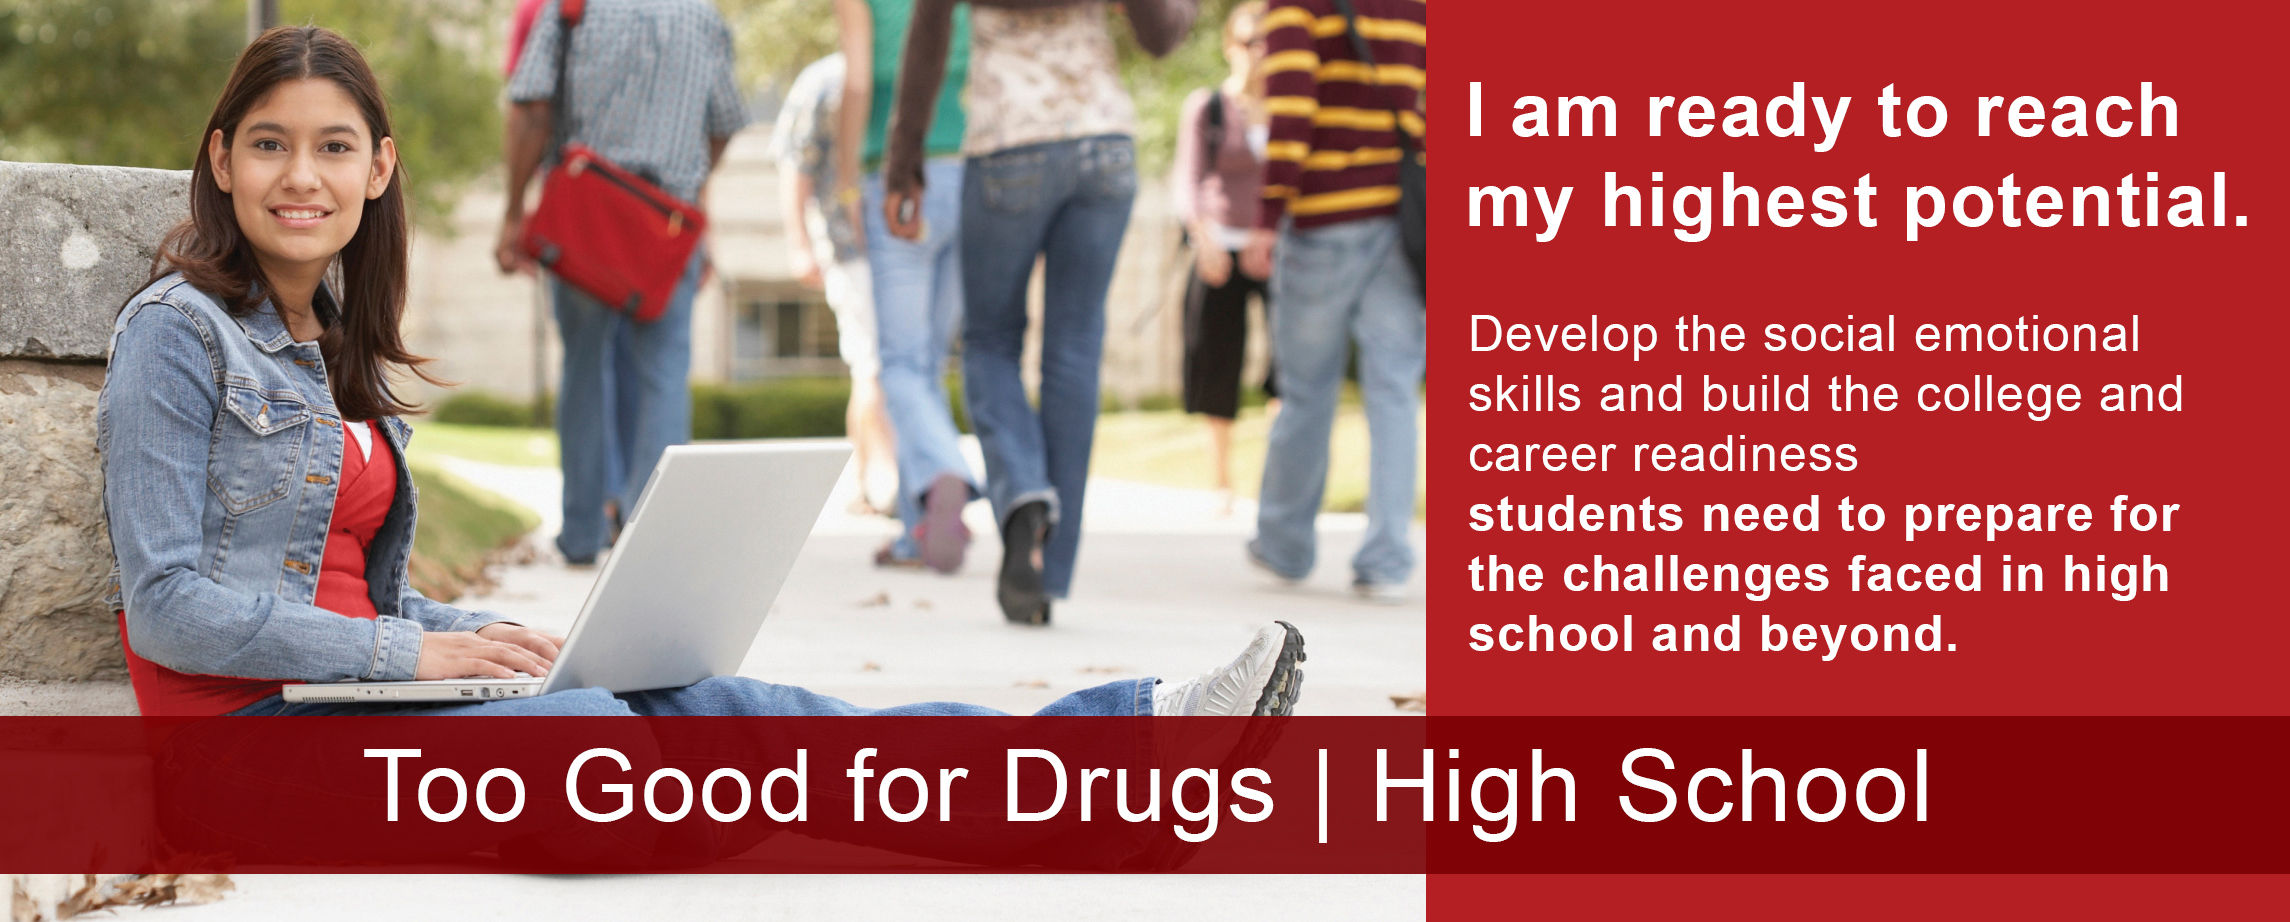 Too Good for Drugs - High School Revised